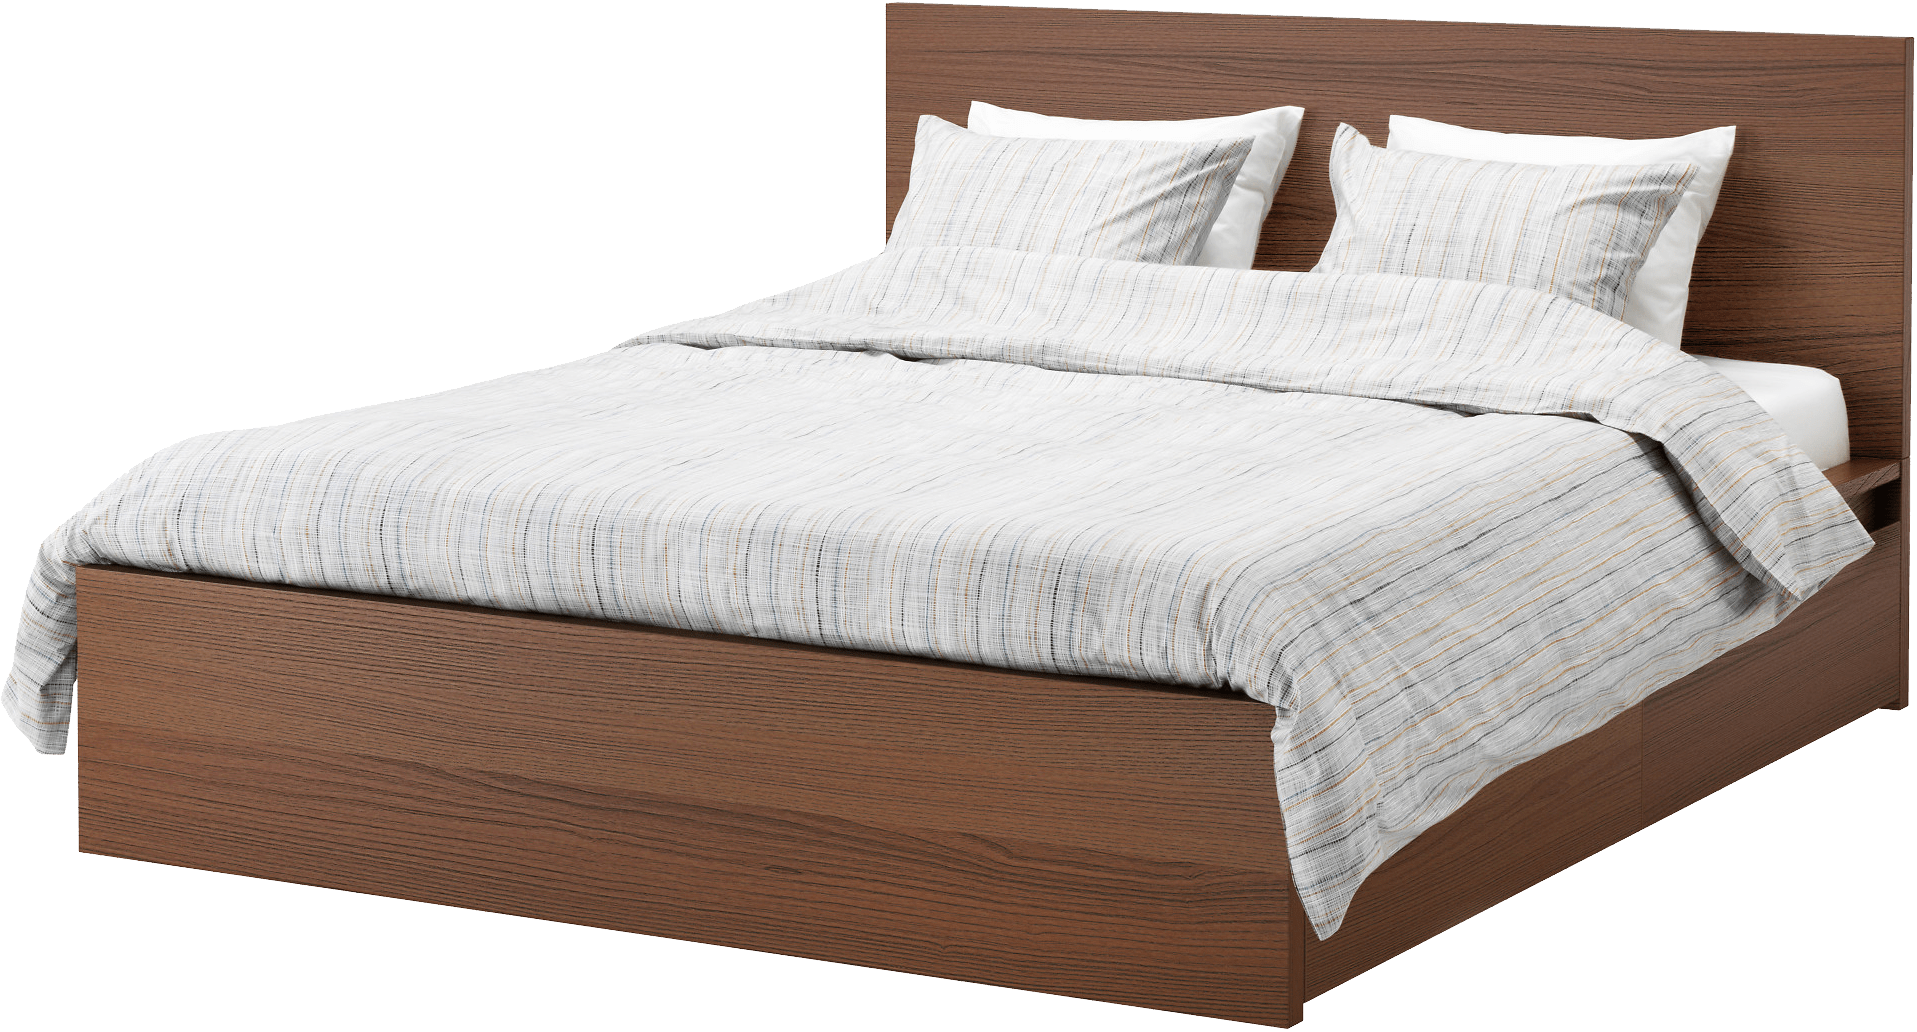 Drawing bed wooden. Romantic royal transparent png